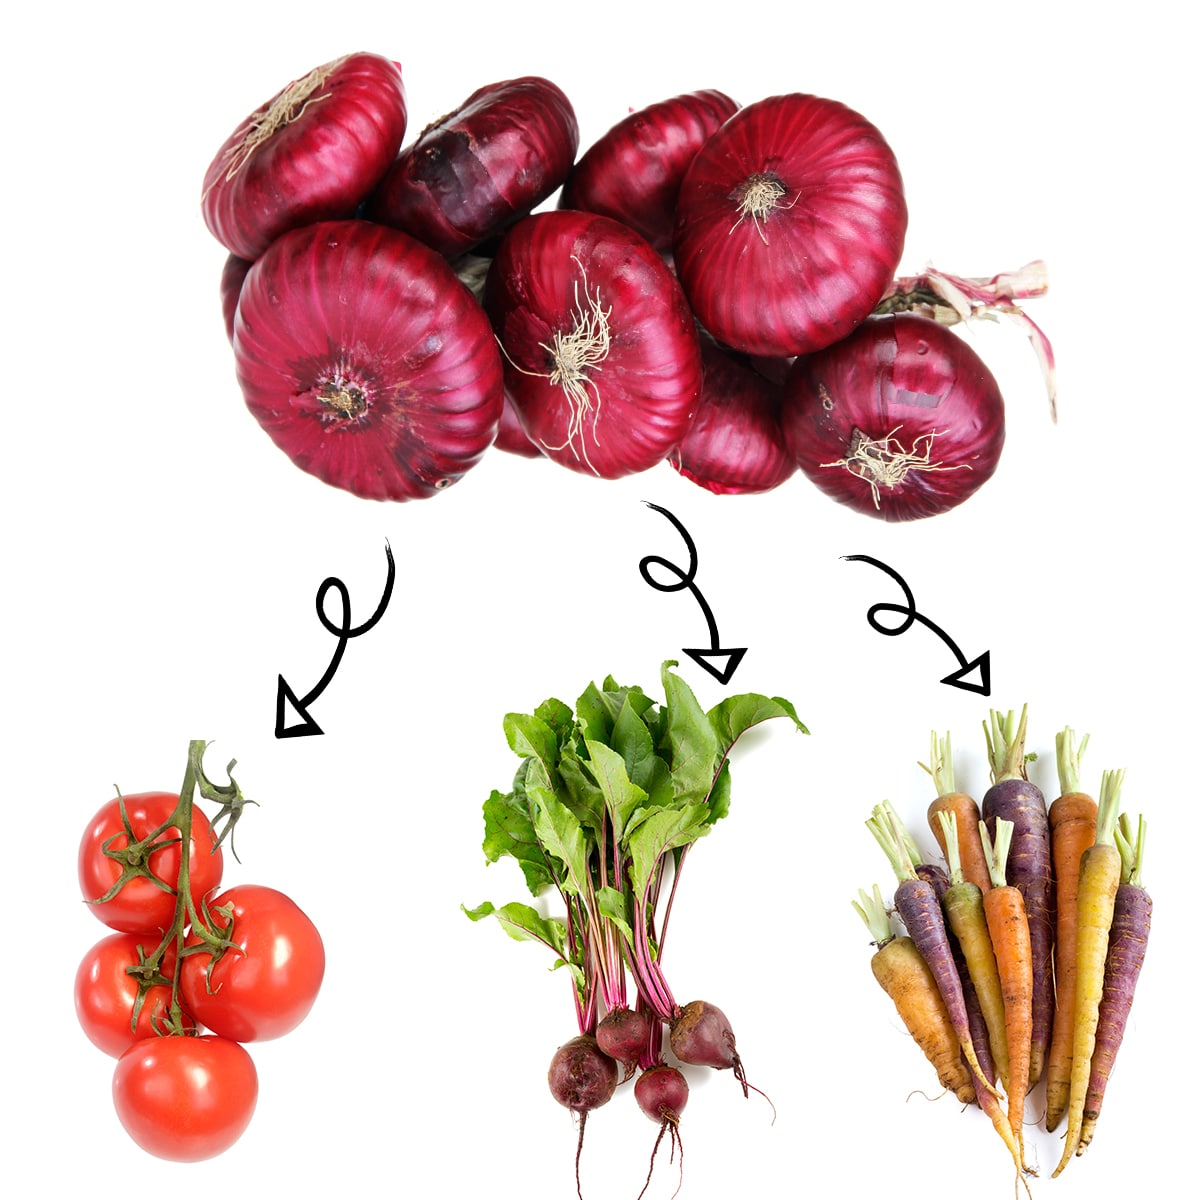 Bright white graphic of a bundle of red onions with arrows linking it to beets, fresh ripe tomatoes on the vine, and fresh carrots.